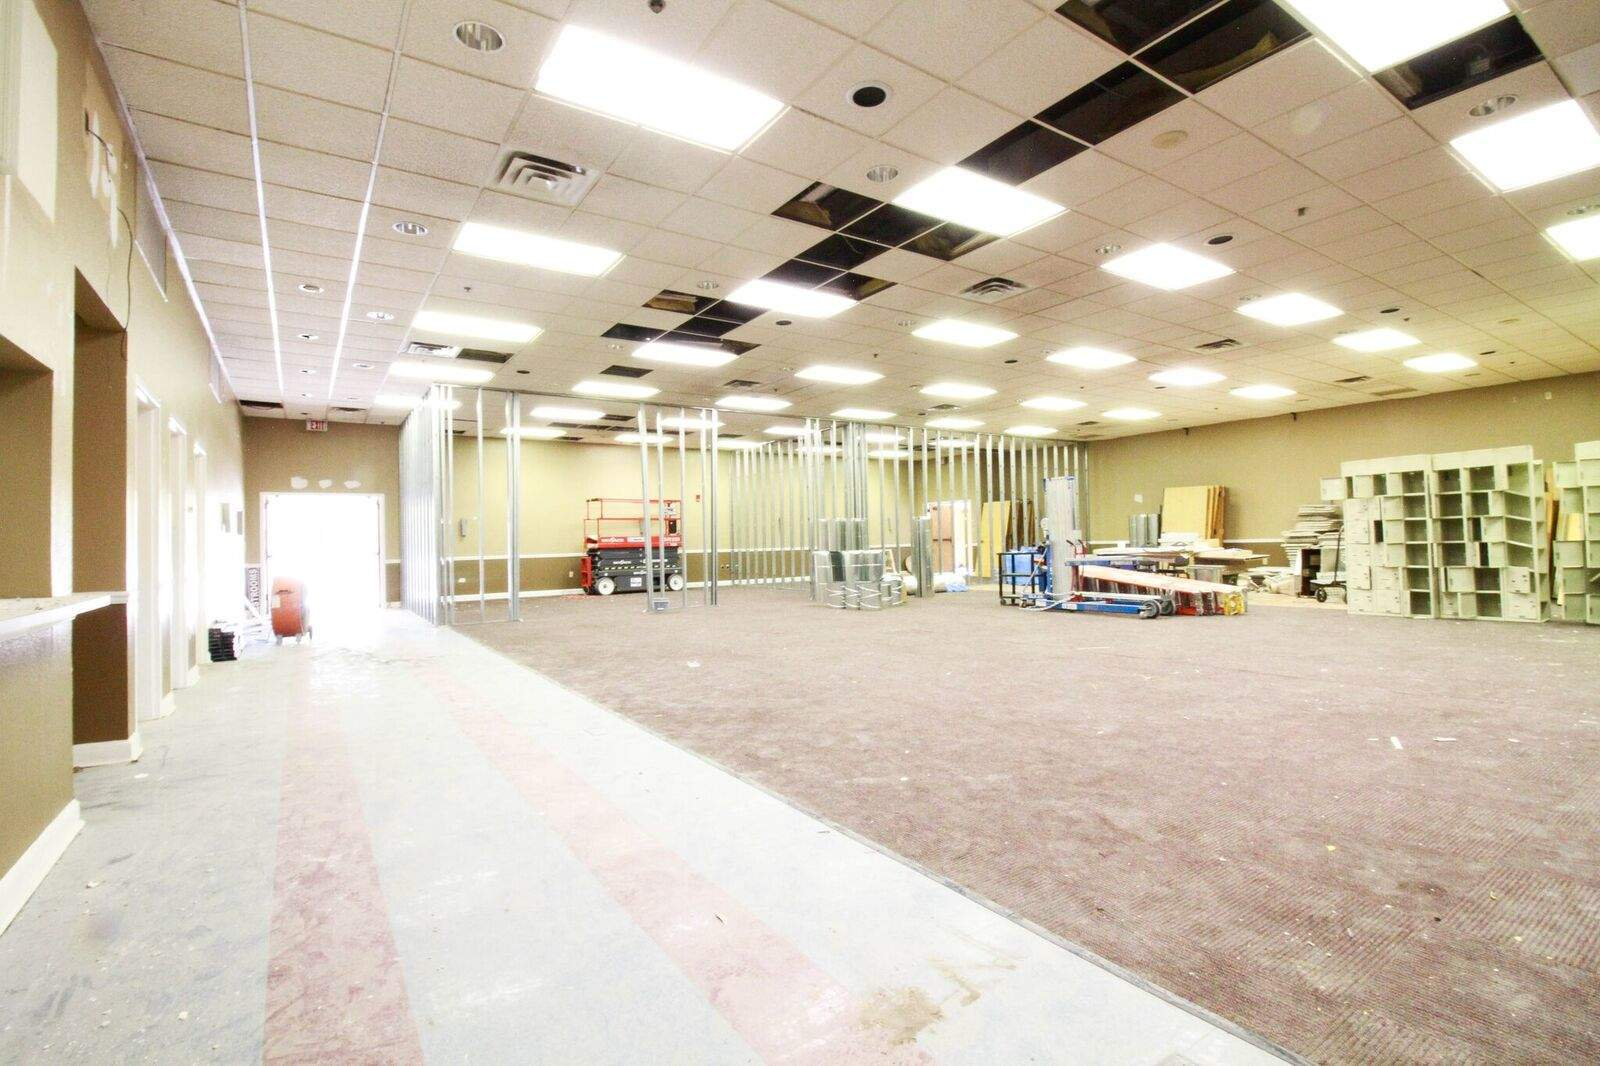 This room, which has passthrough access to the kitchen on the left, will serve as a multi-purpose event, meeting, and classroom space for mid-size events.